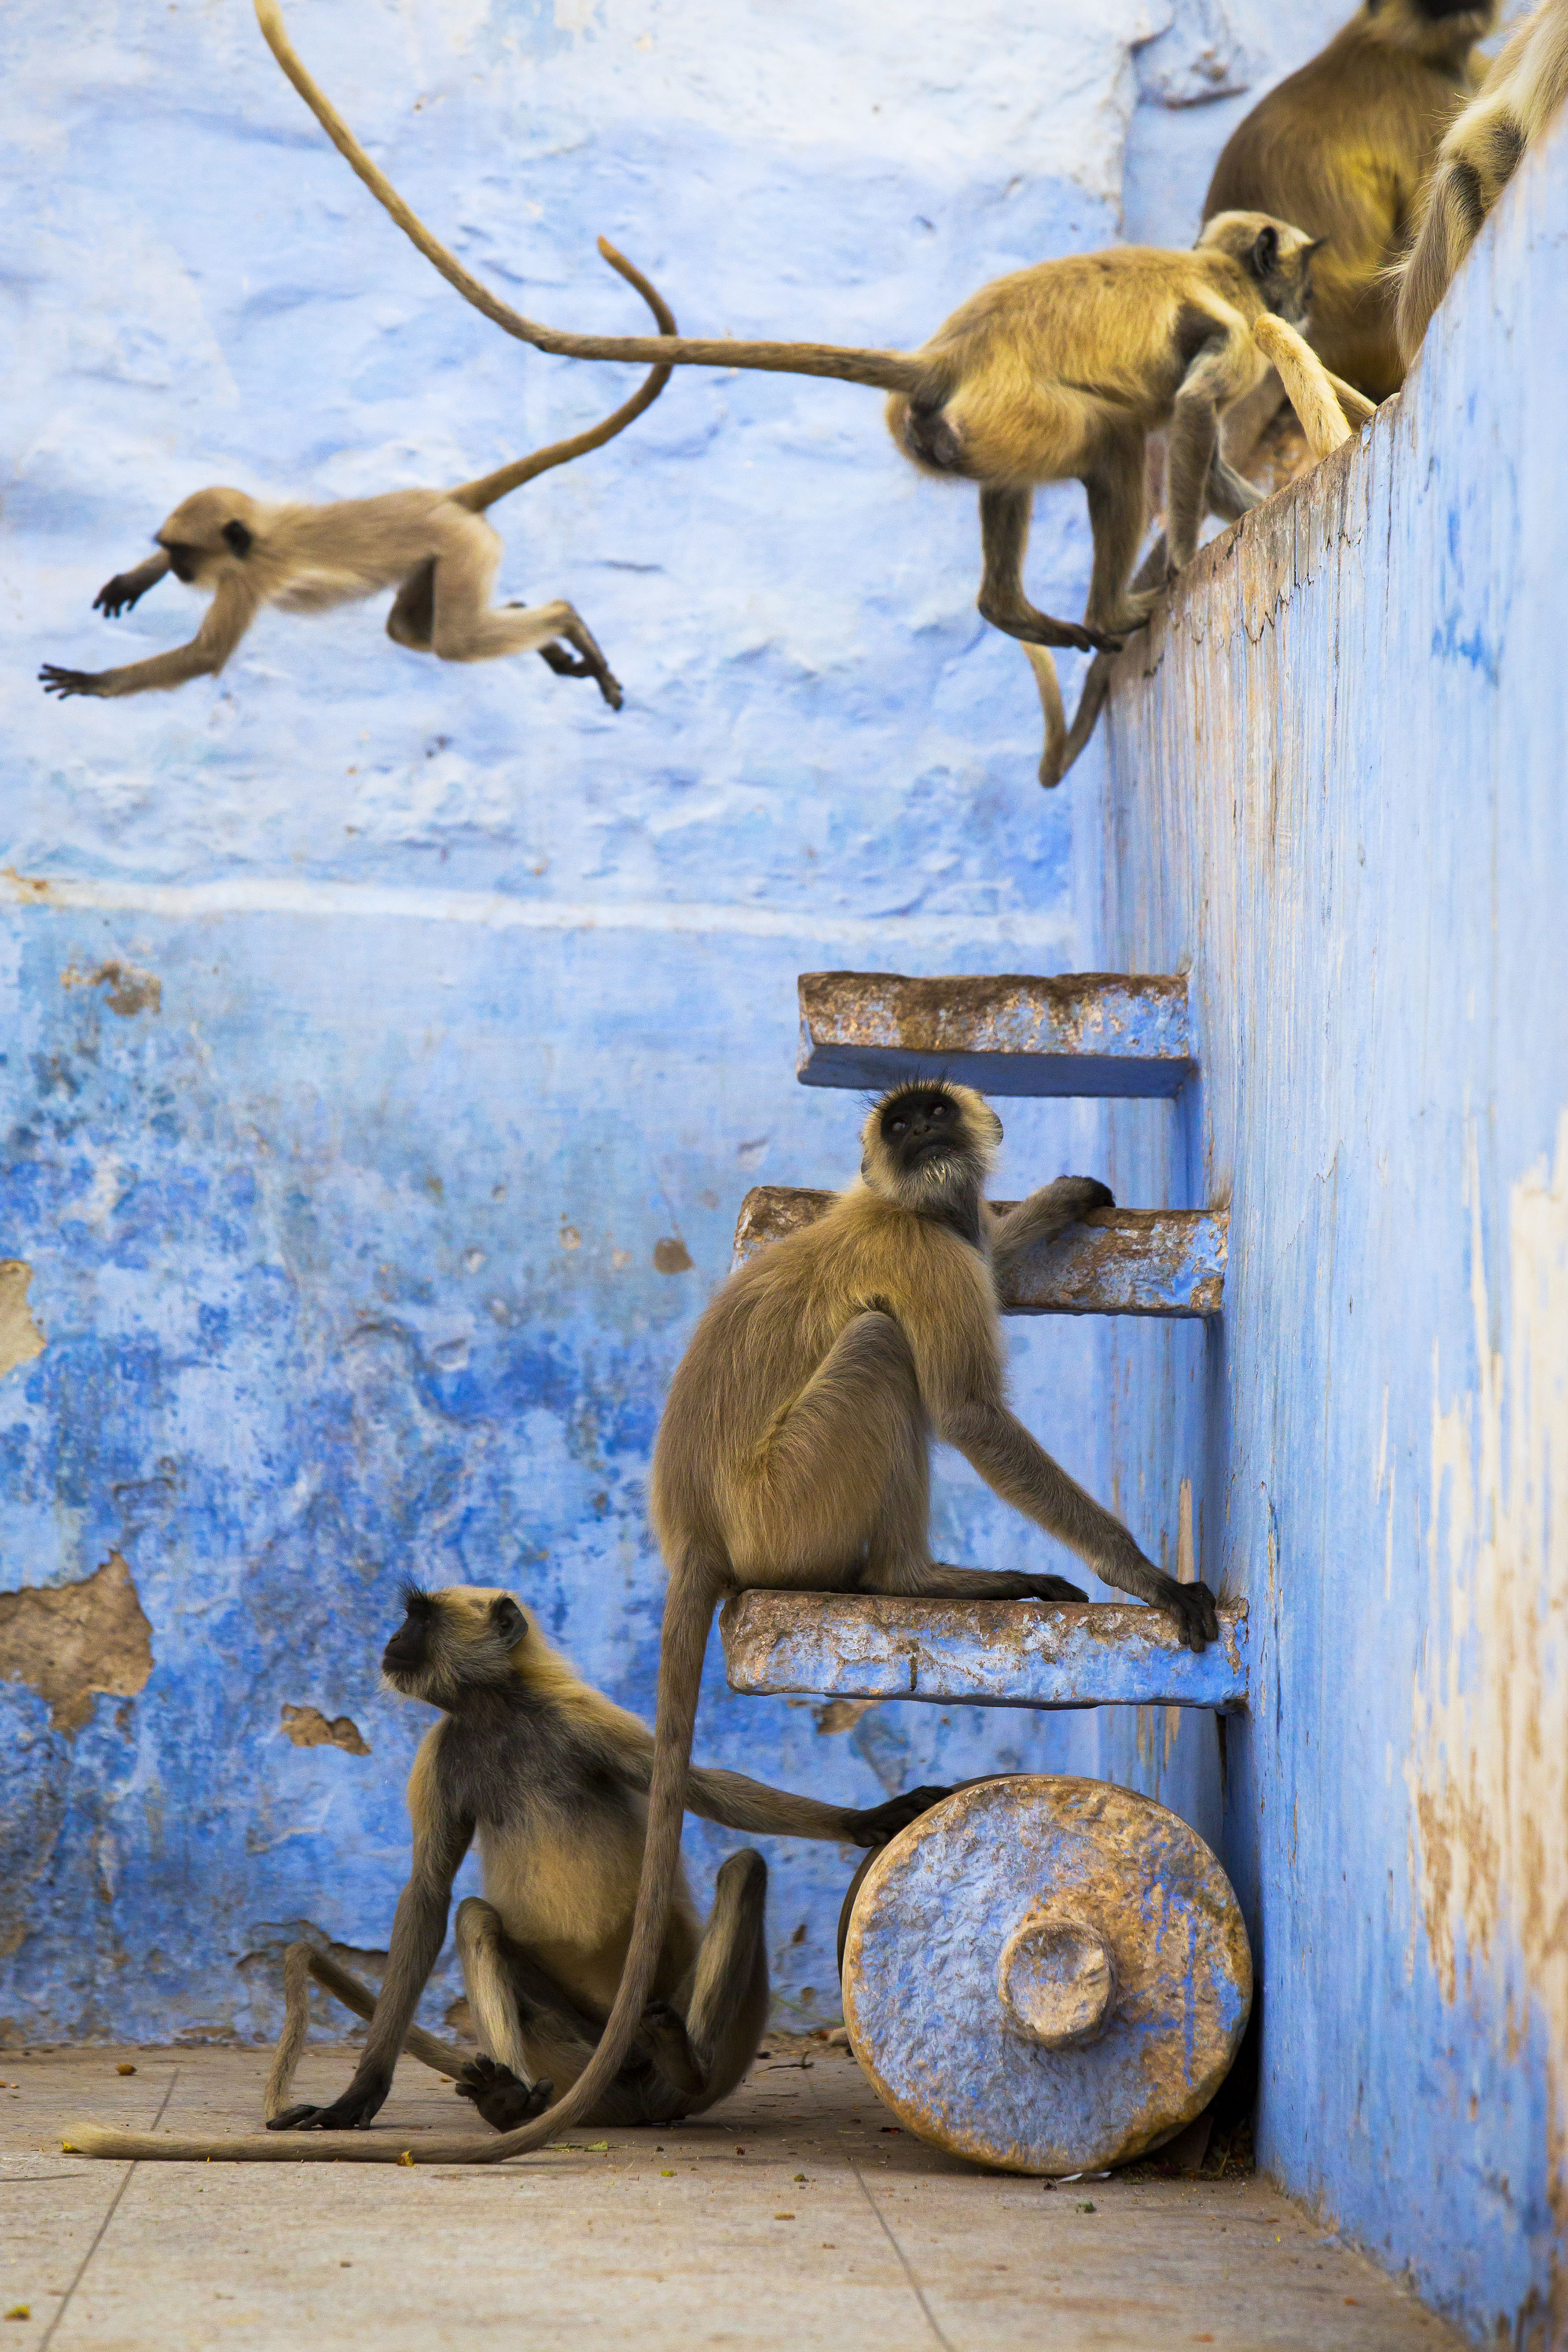 These Hanuman langurs have free roam in the blue city of Jodhpur, India. It is their home and their playground. Treated as religious deities they are fed and well looked after by the cityís inhabitants.